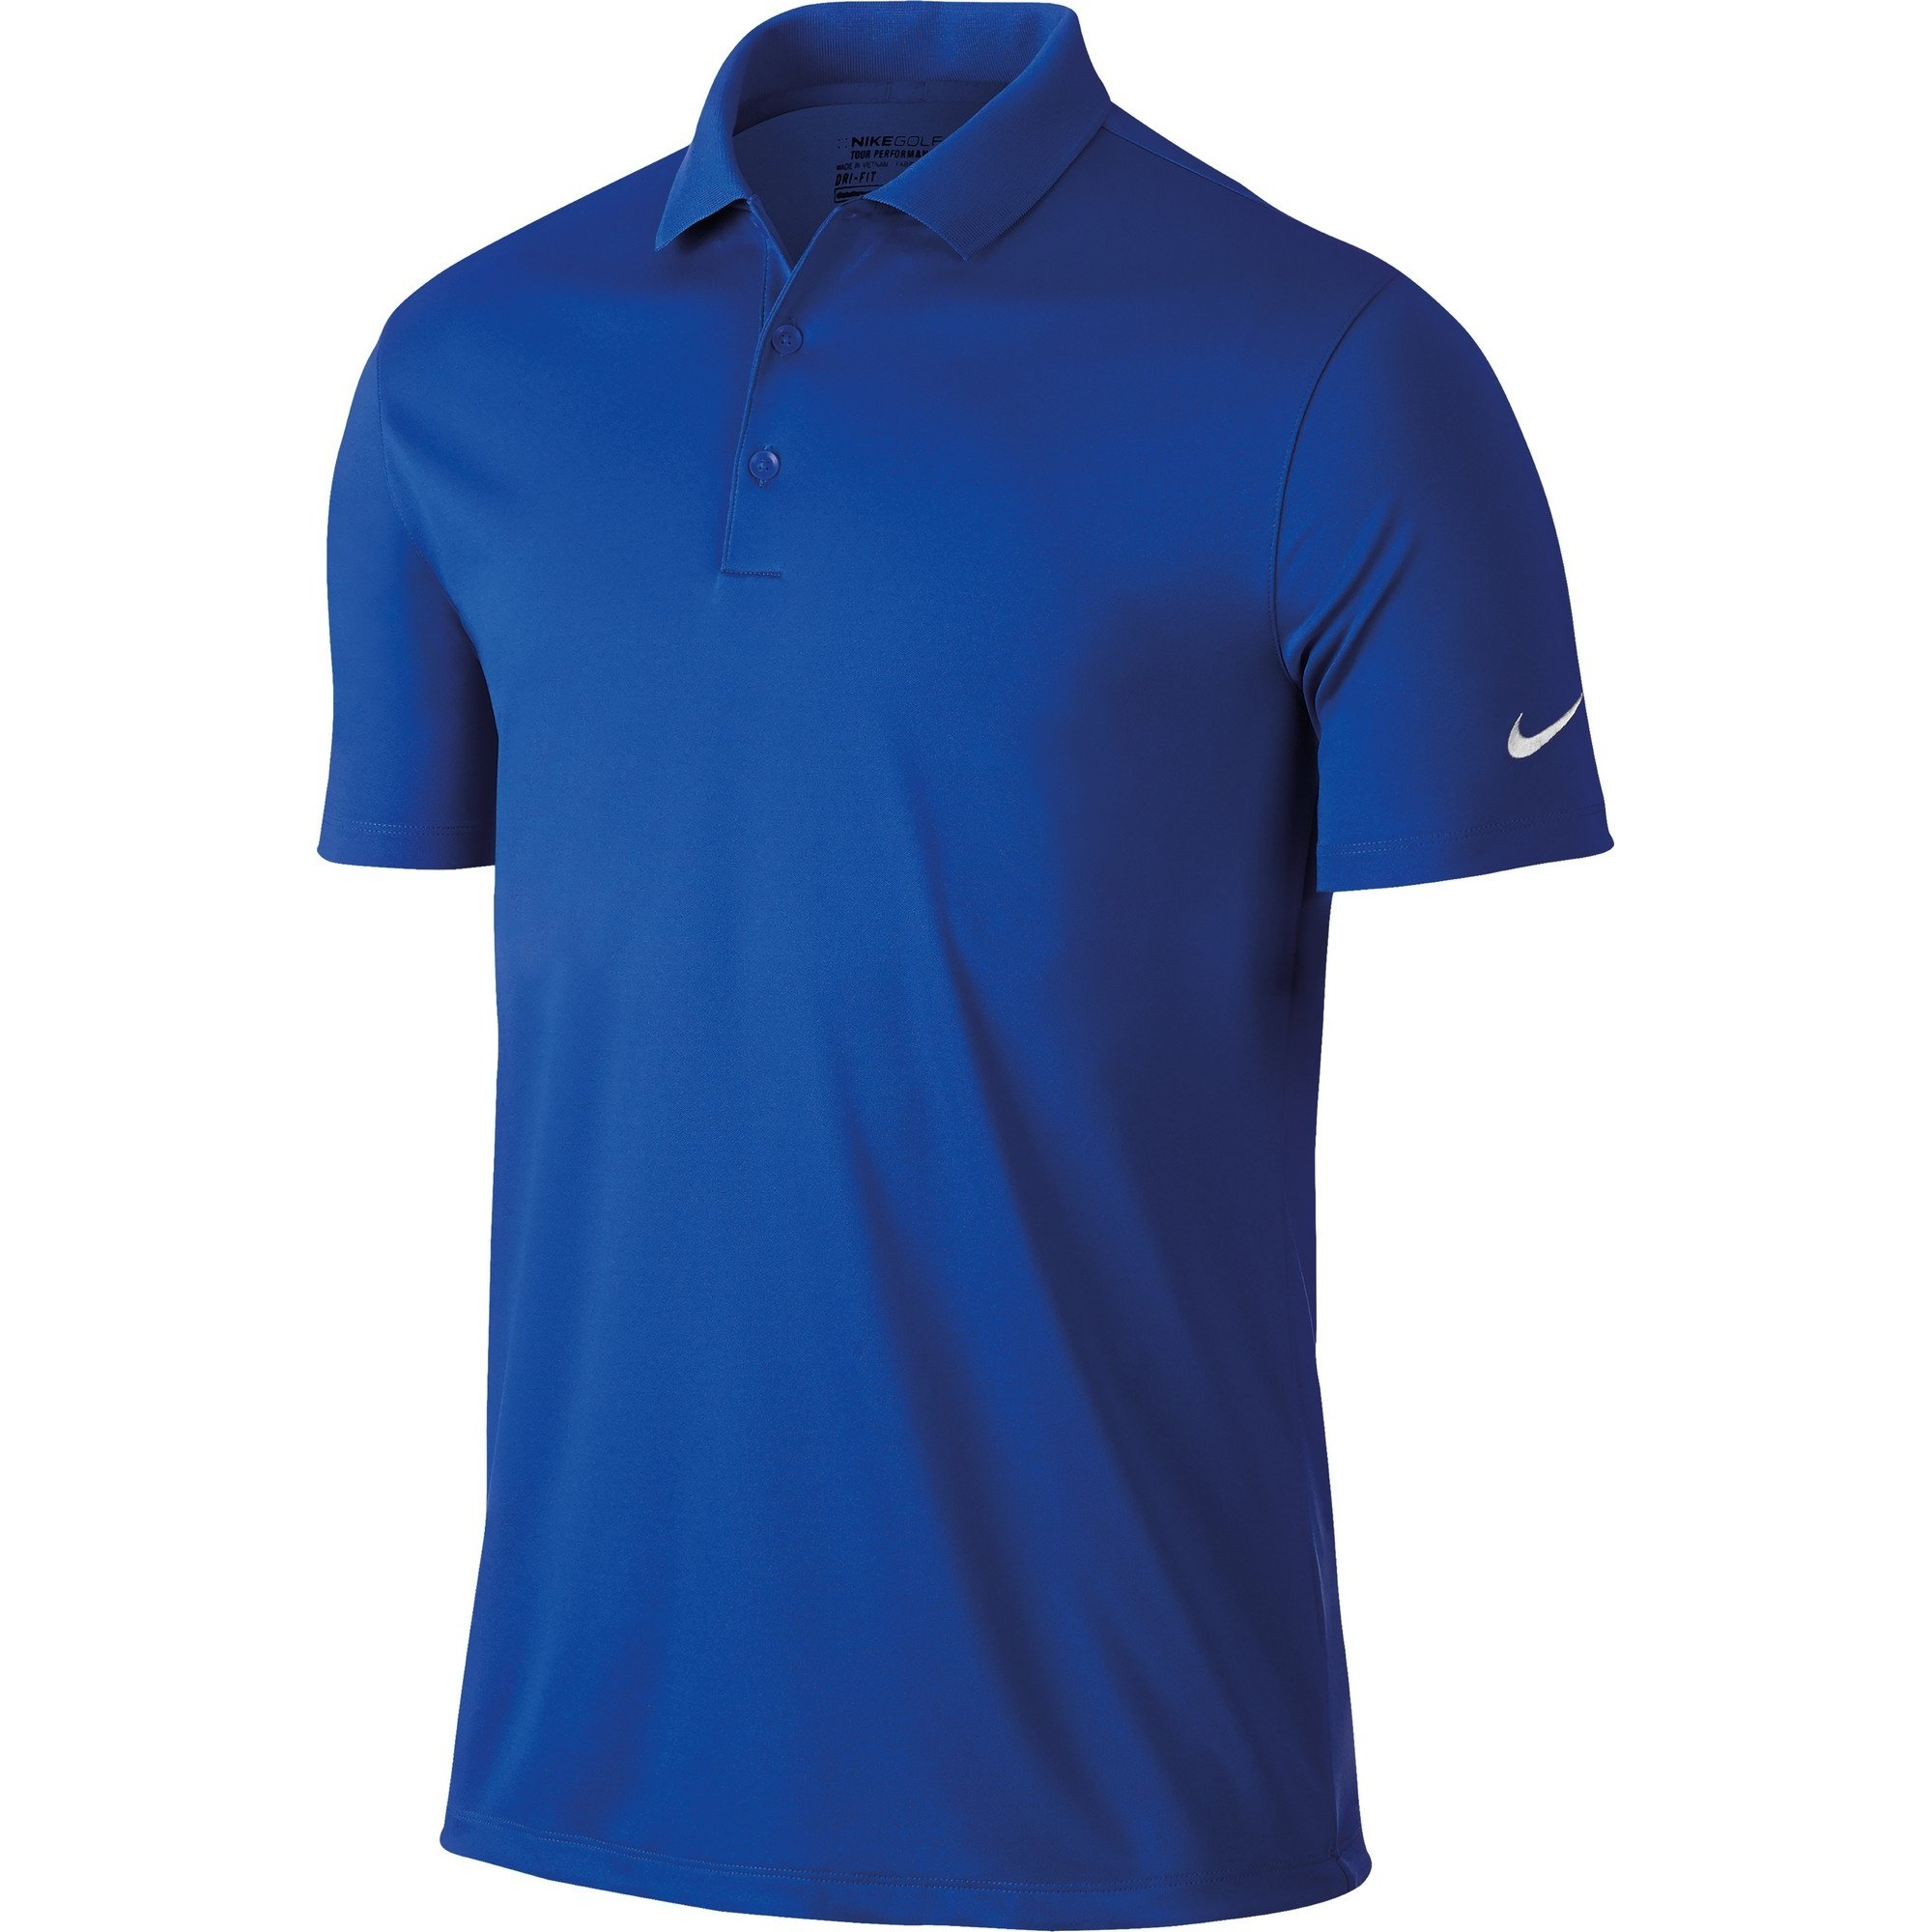 NIKE Men's Dry Victory Polo, Game Royal/White, Medium